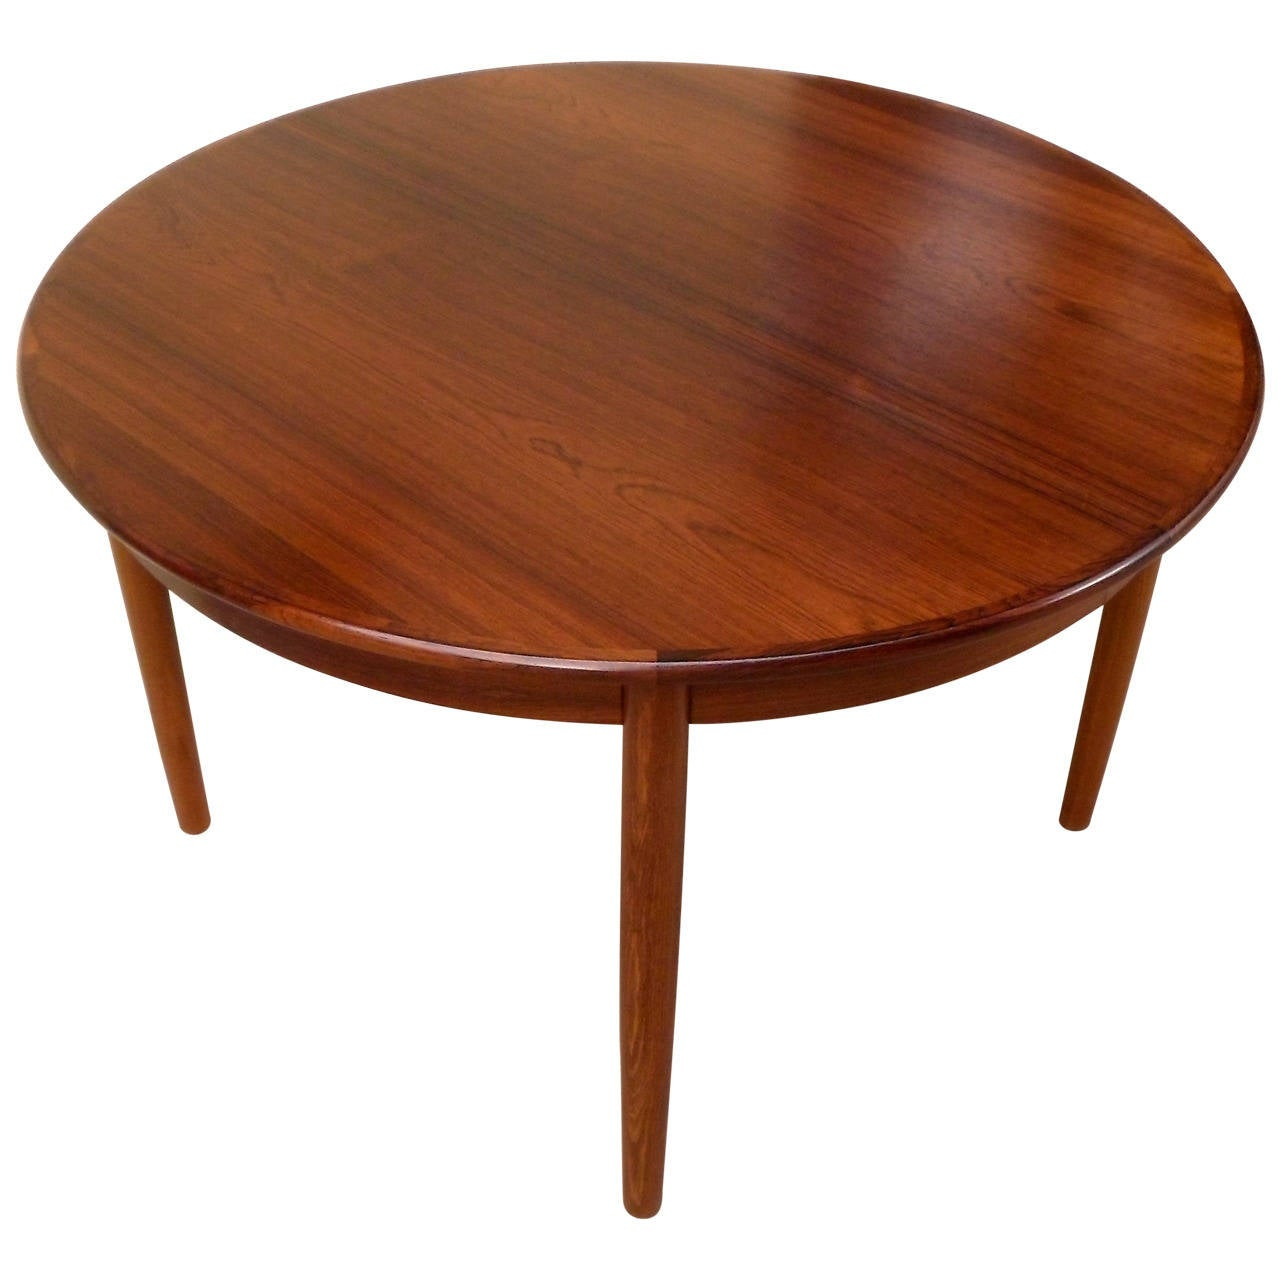 Danish Mid Century Modern Extendable Rosewood Dining Table With Leaves For